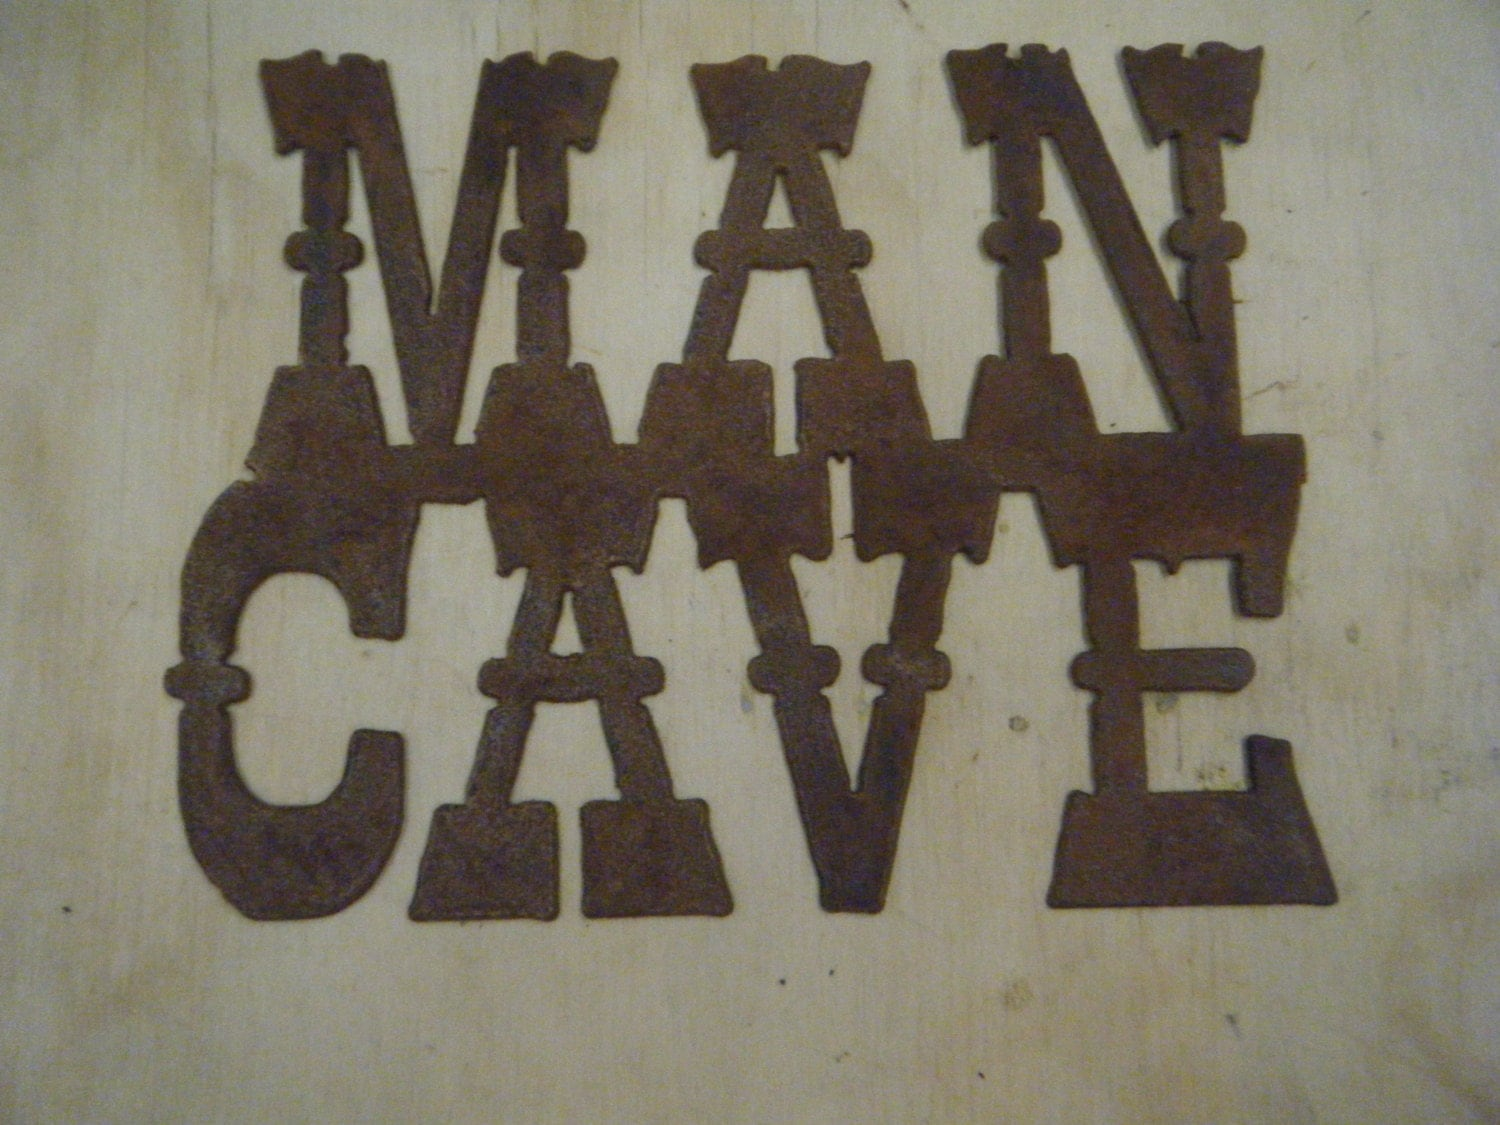 Personalised Metal Man Cave Signs : Free shipping rusted rustic metal man cave sign